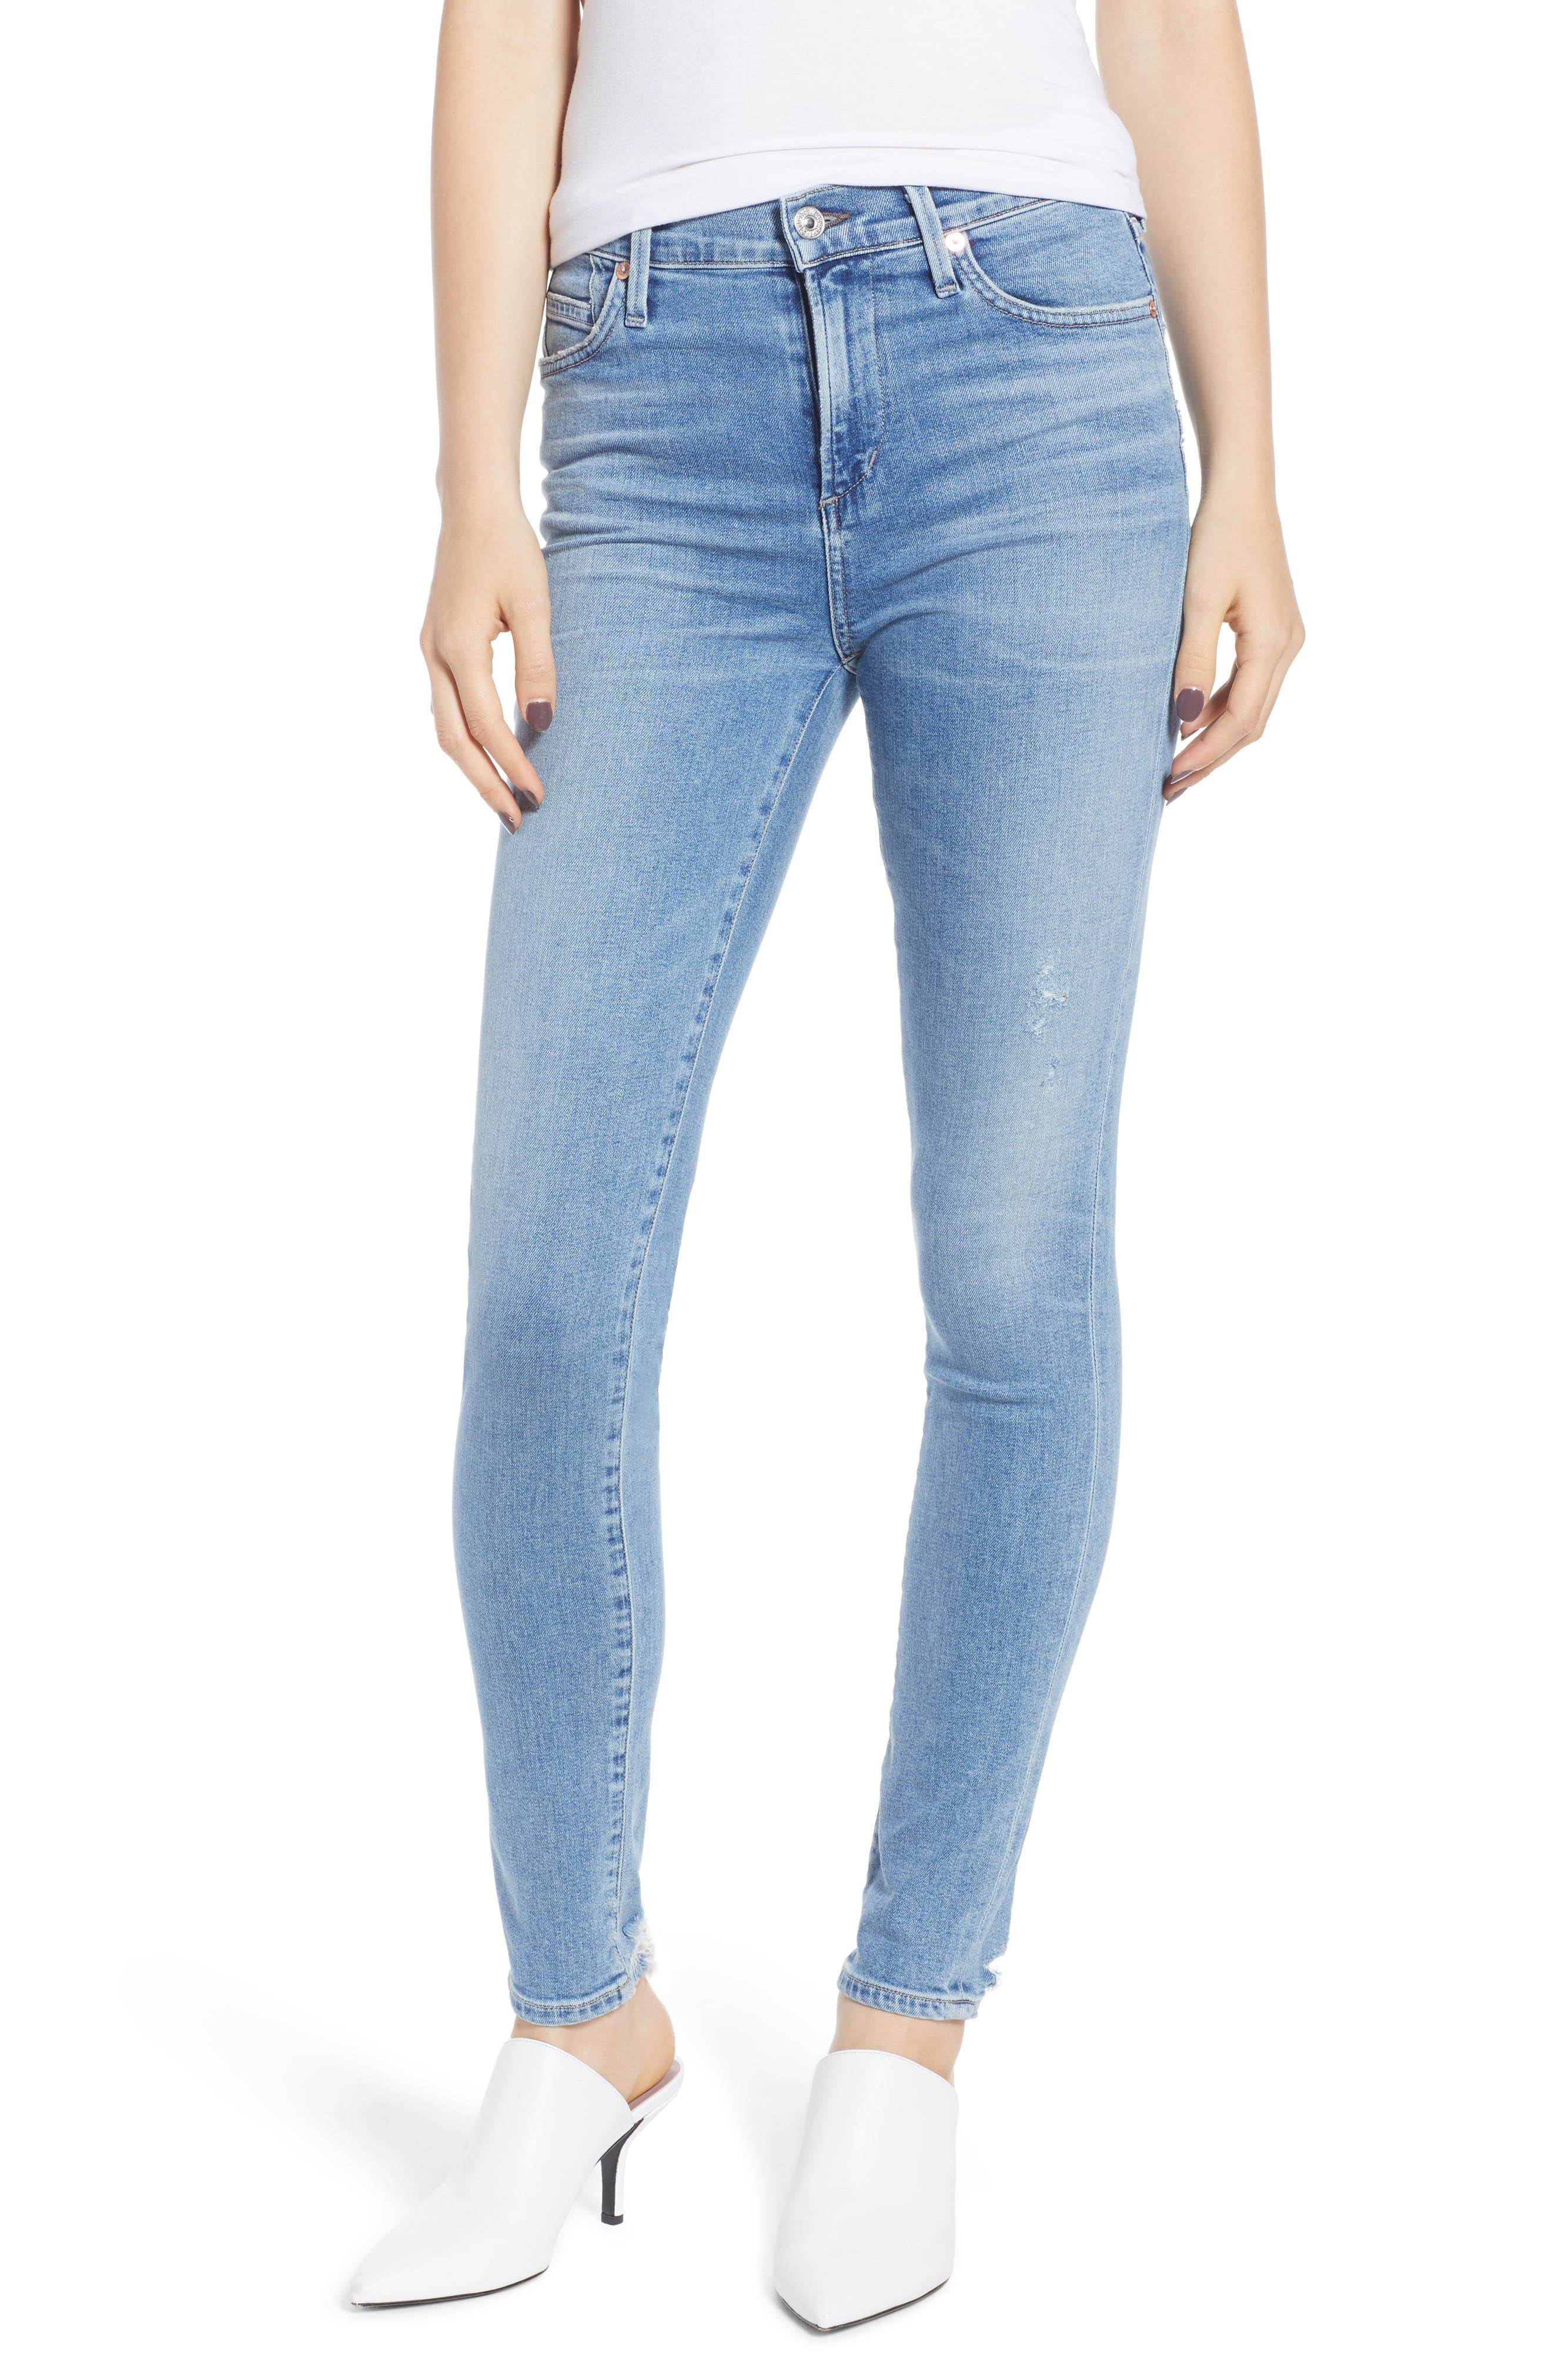 CITIZENS OF HUMANITY, Rocket High Waist Skinny Jeans, Main thumbnail 1, color, SMALL TALK